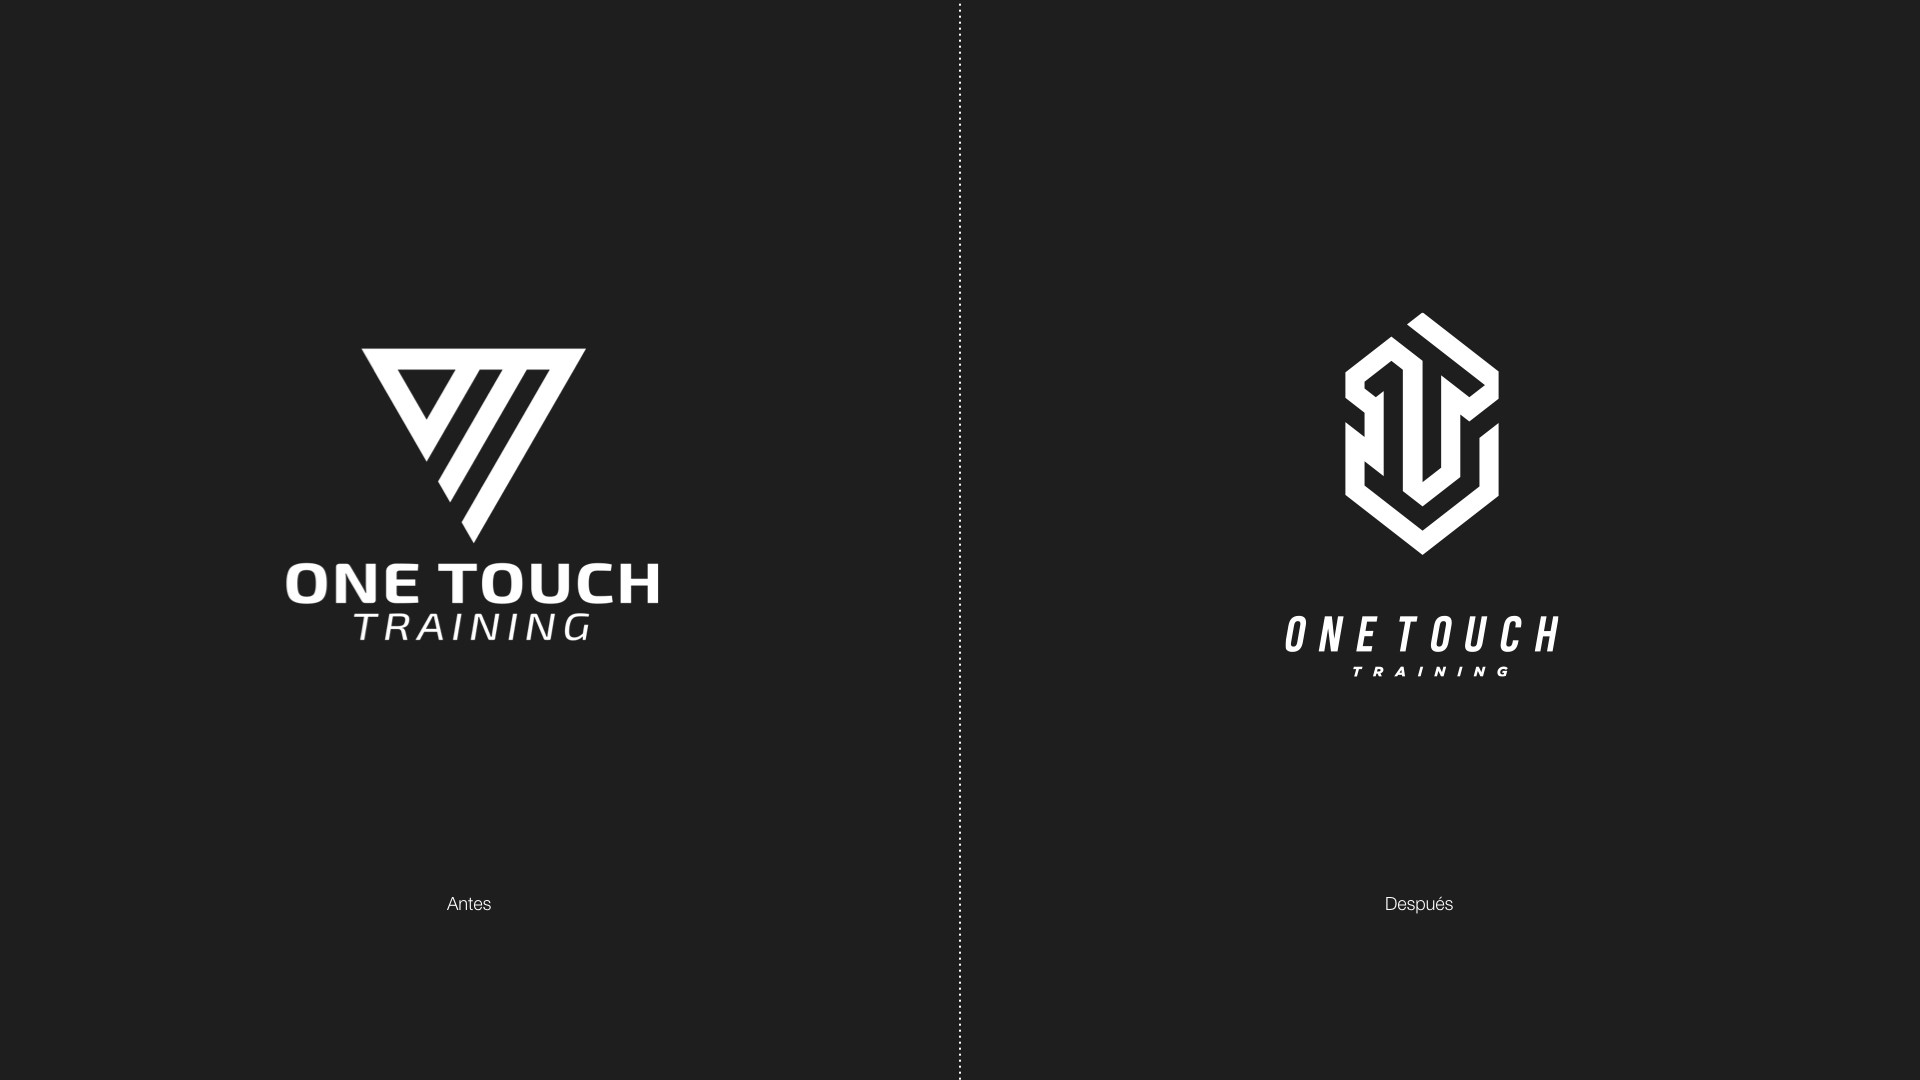 ONE TOUCH.006.jpeg